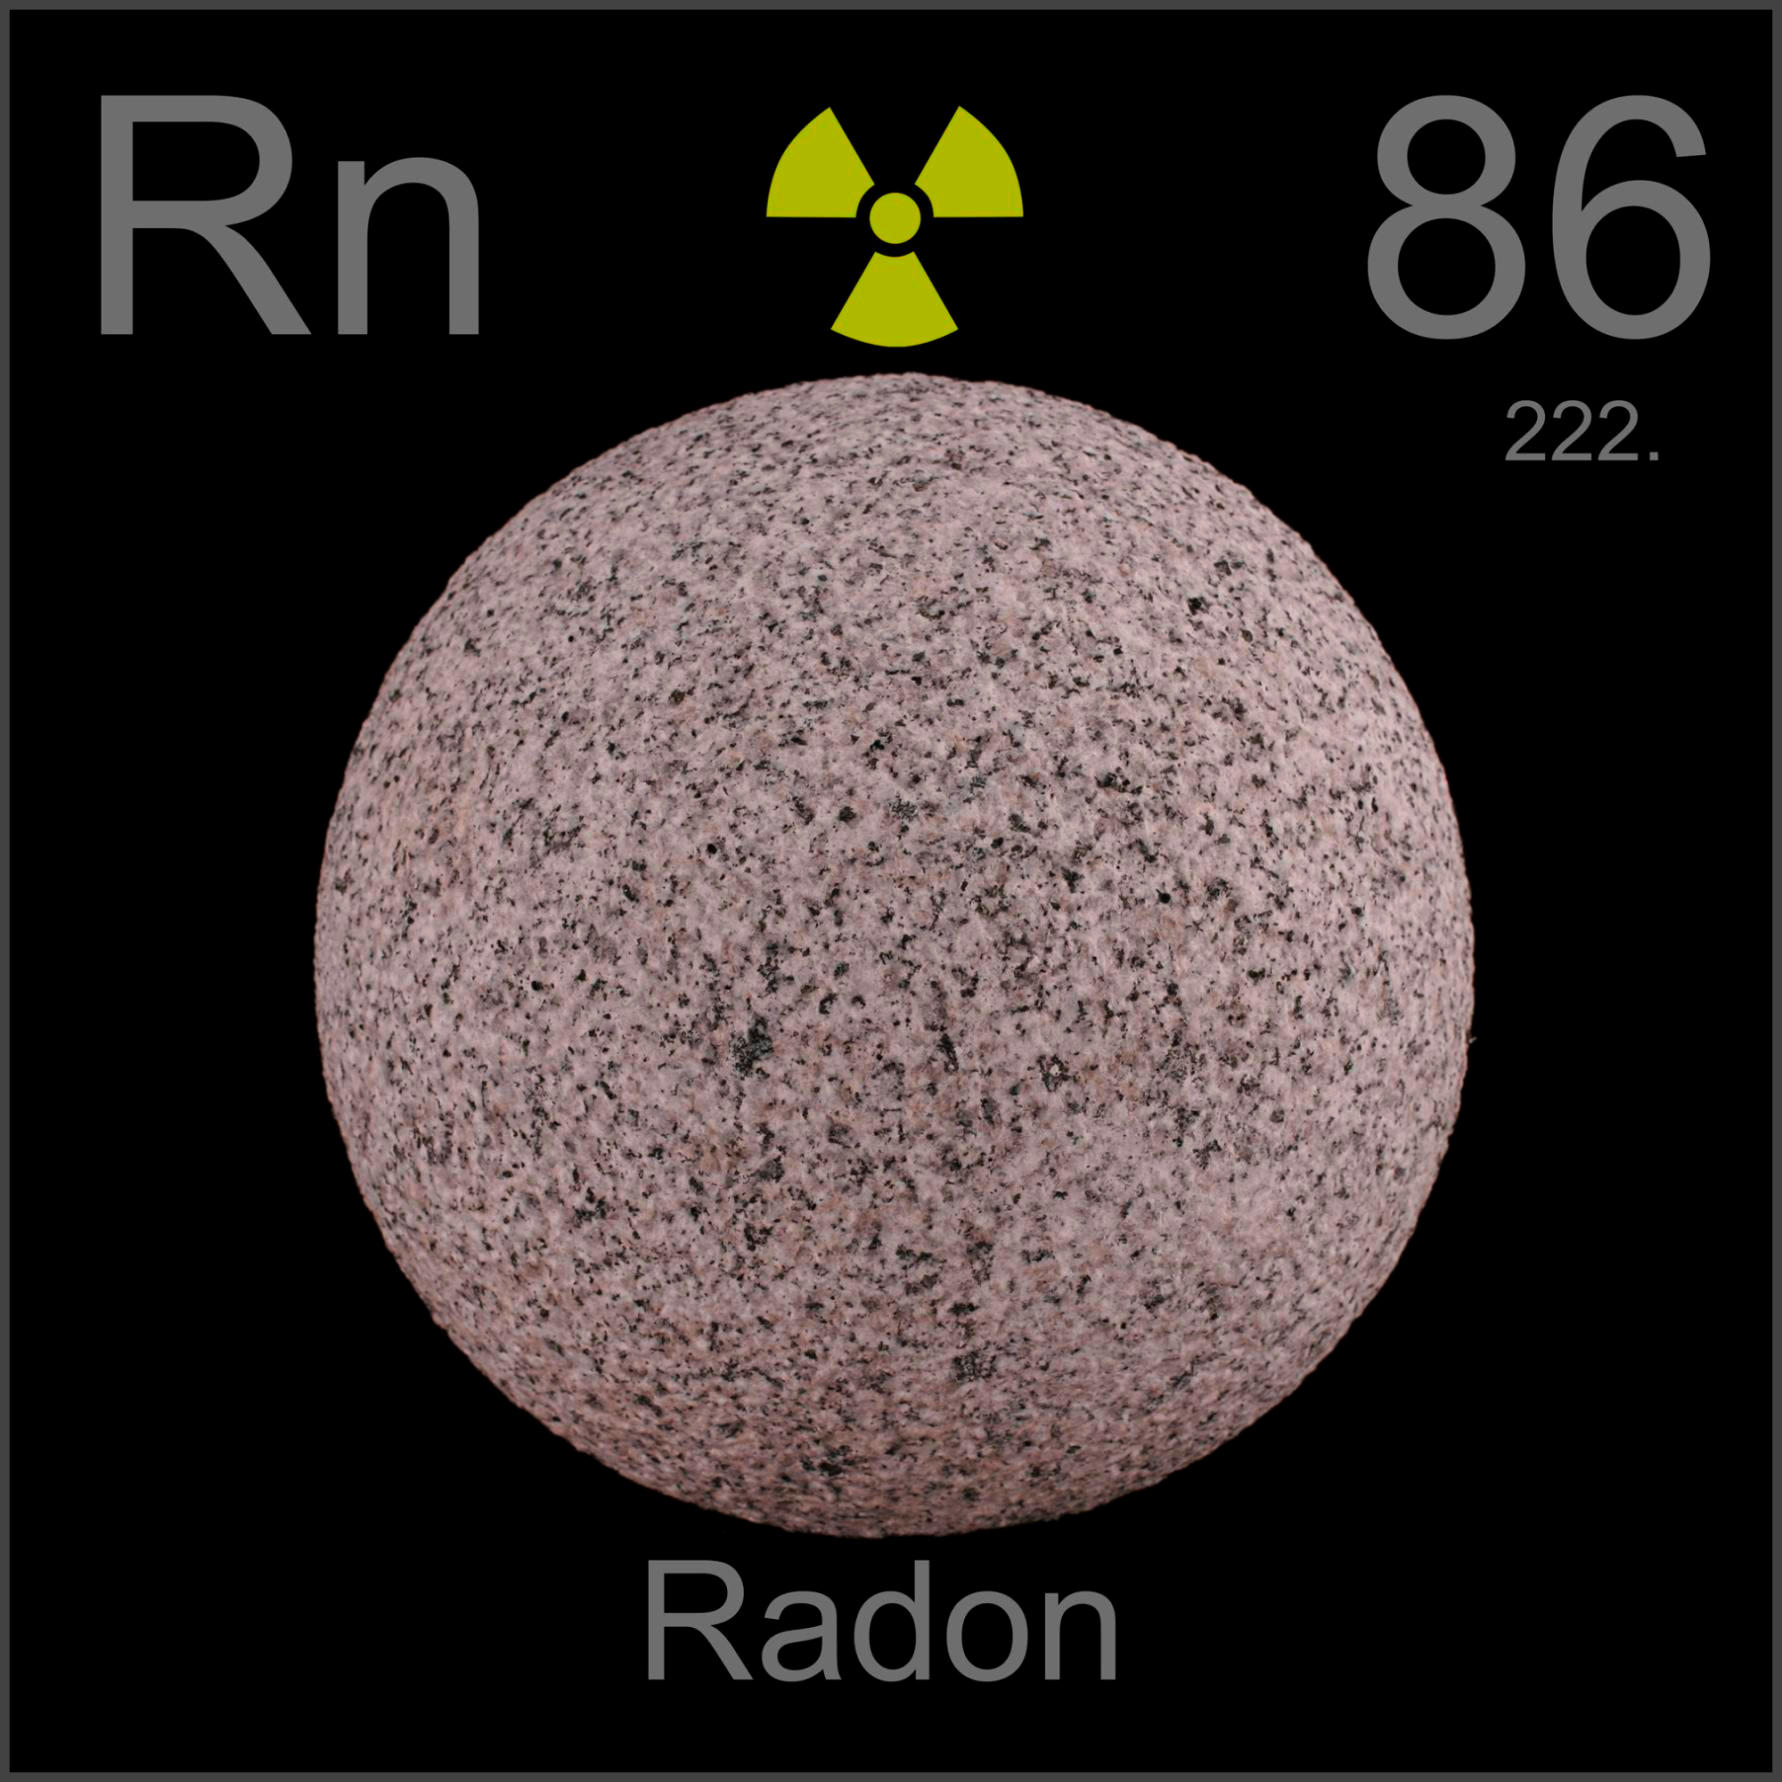 Sample Of The Element Radon In The Periodic Table